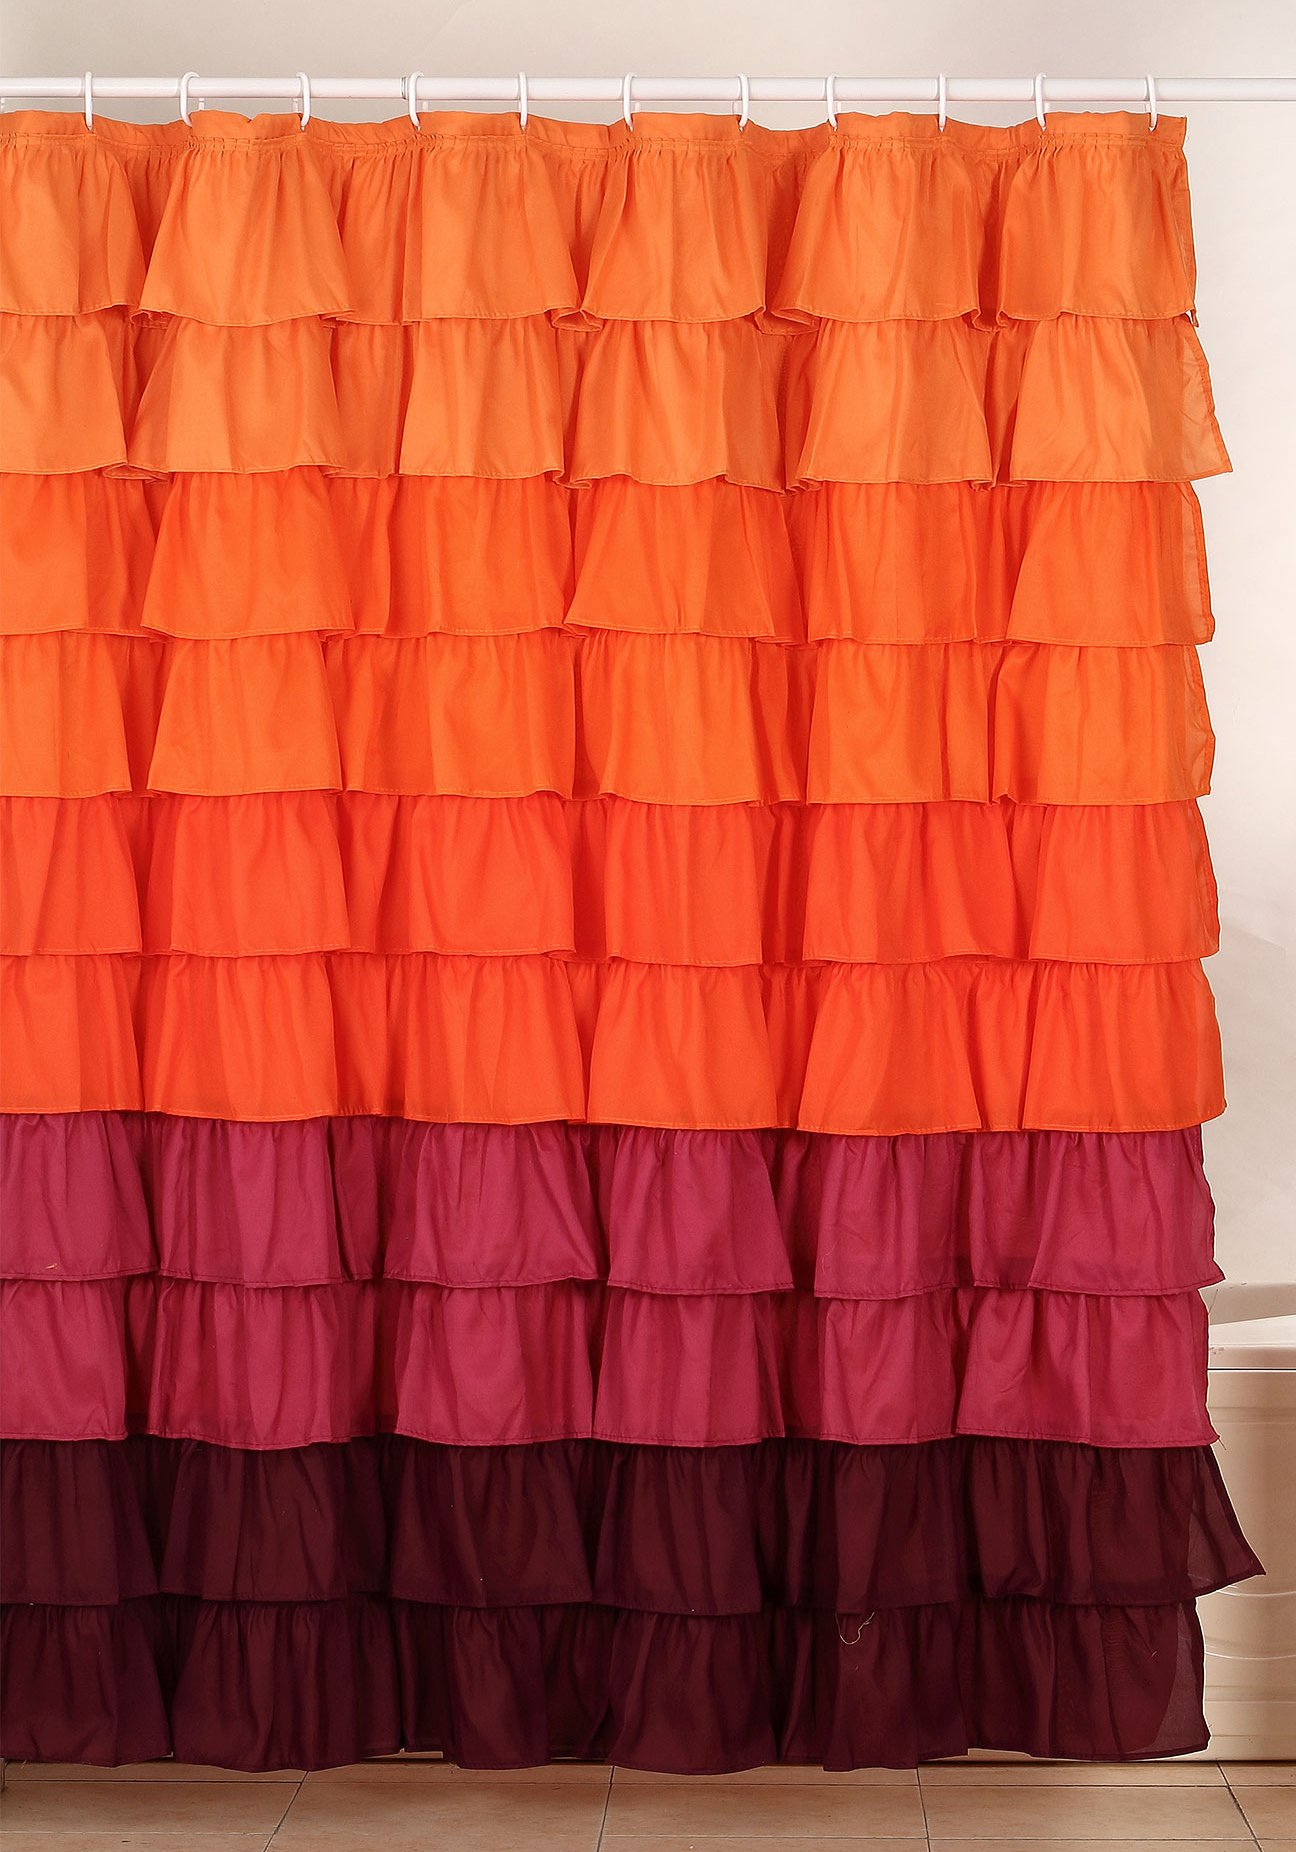 Lavish Home Harvest Ruffle Shower Curtain with Buttonhole